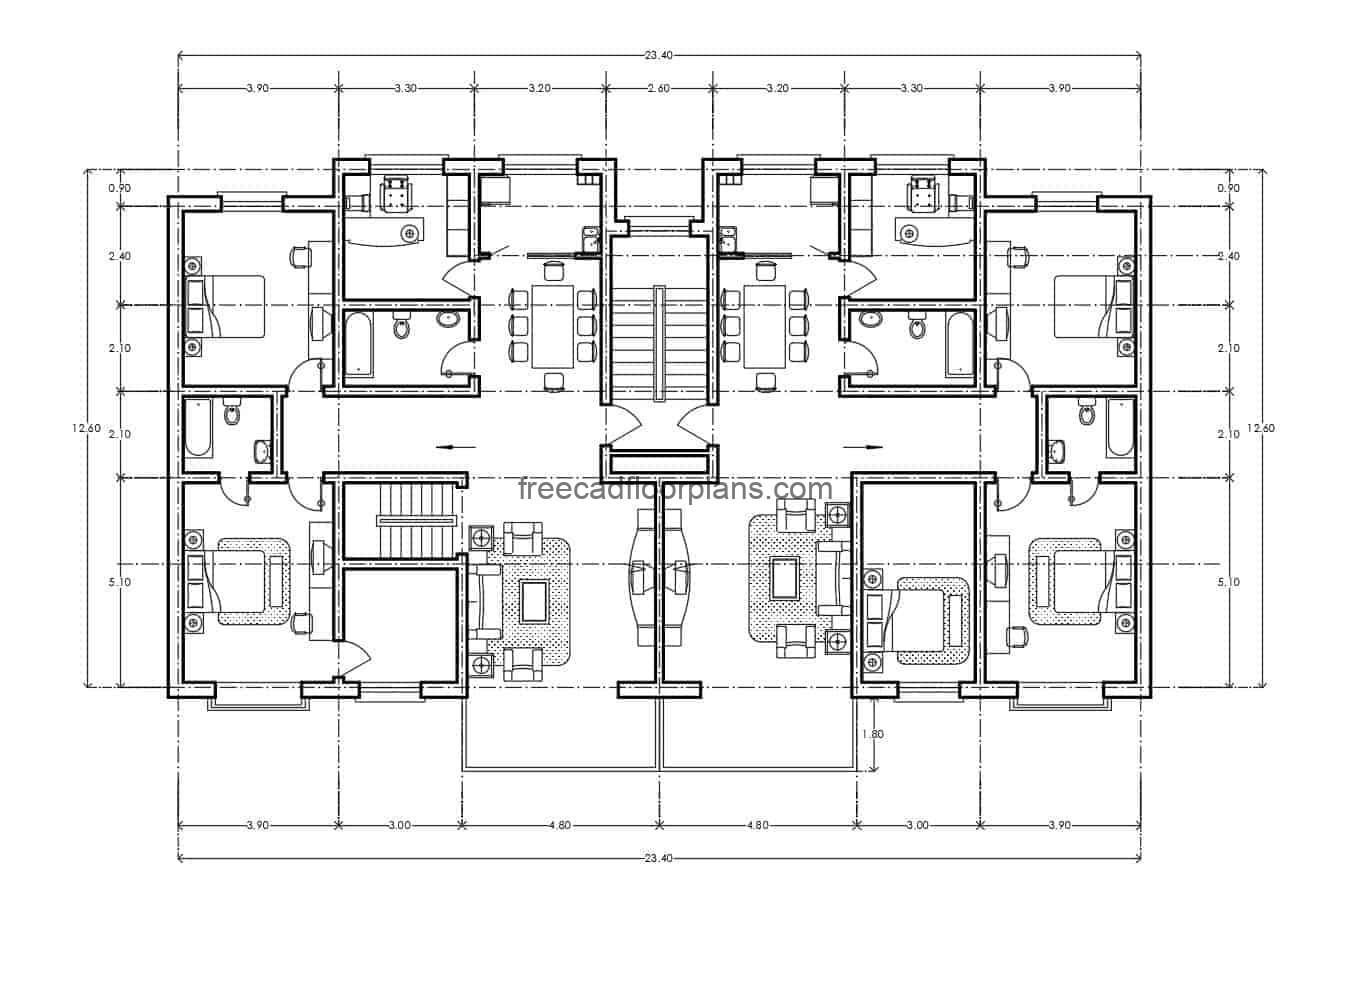 Residential Building Autocad Plan 0507201 Free Cad Floor Plans